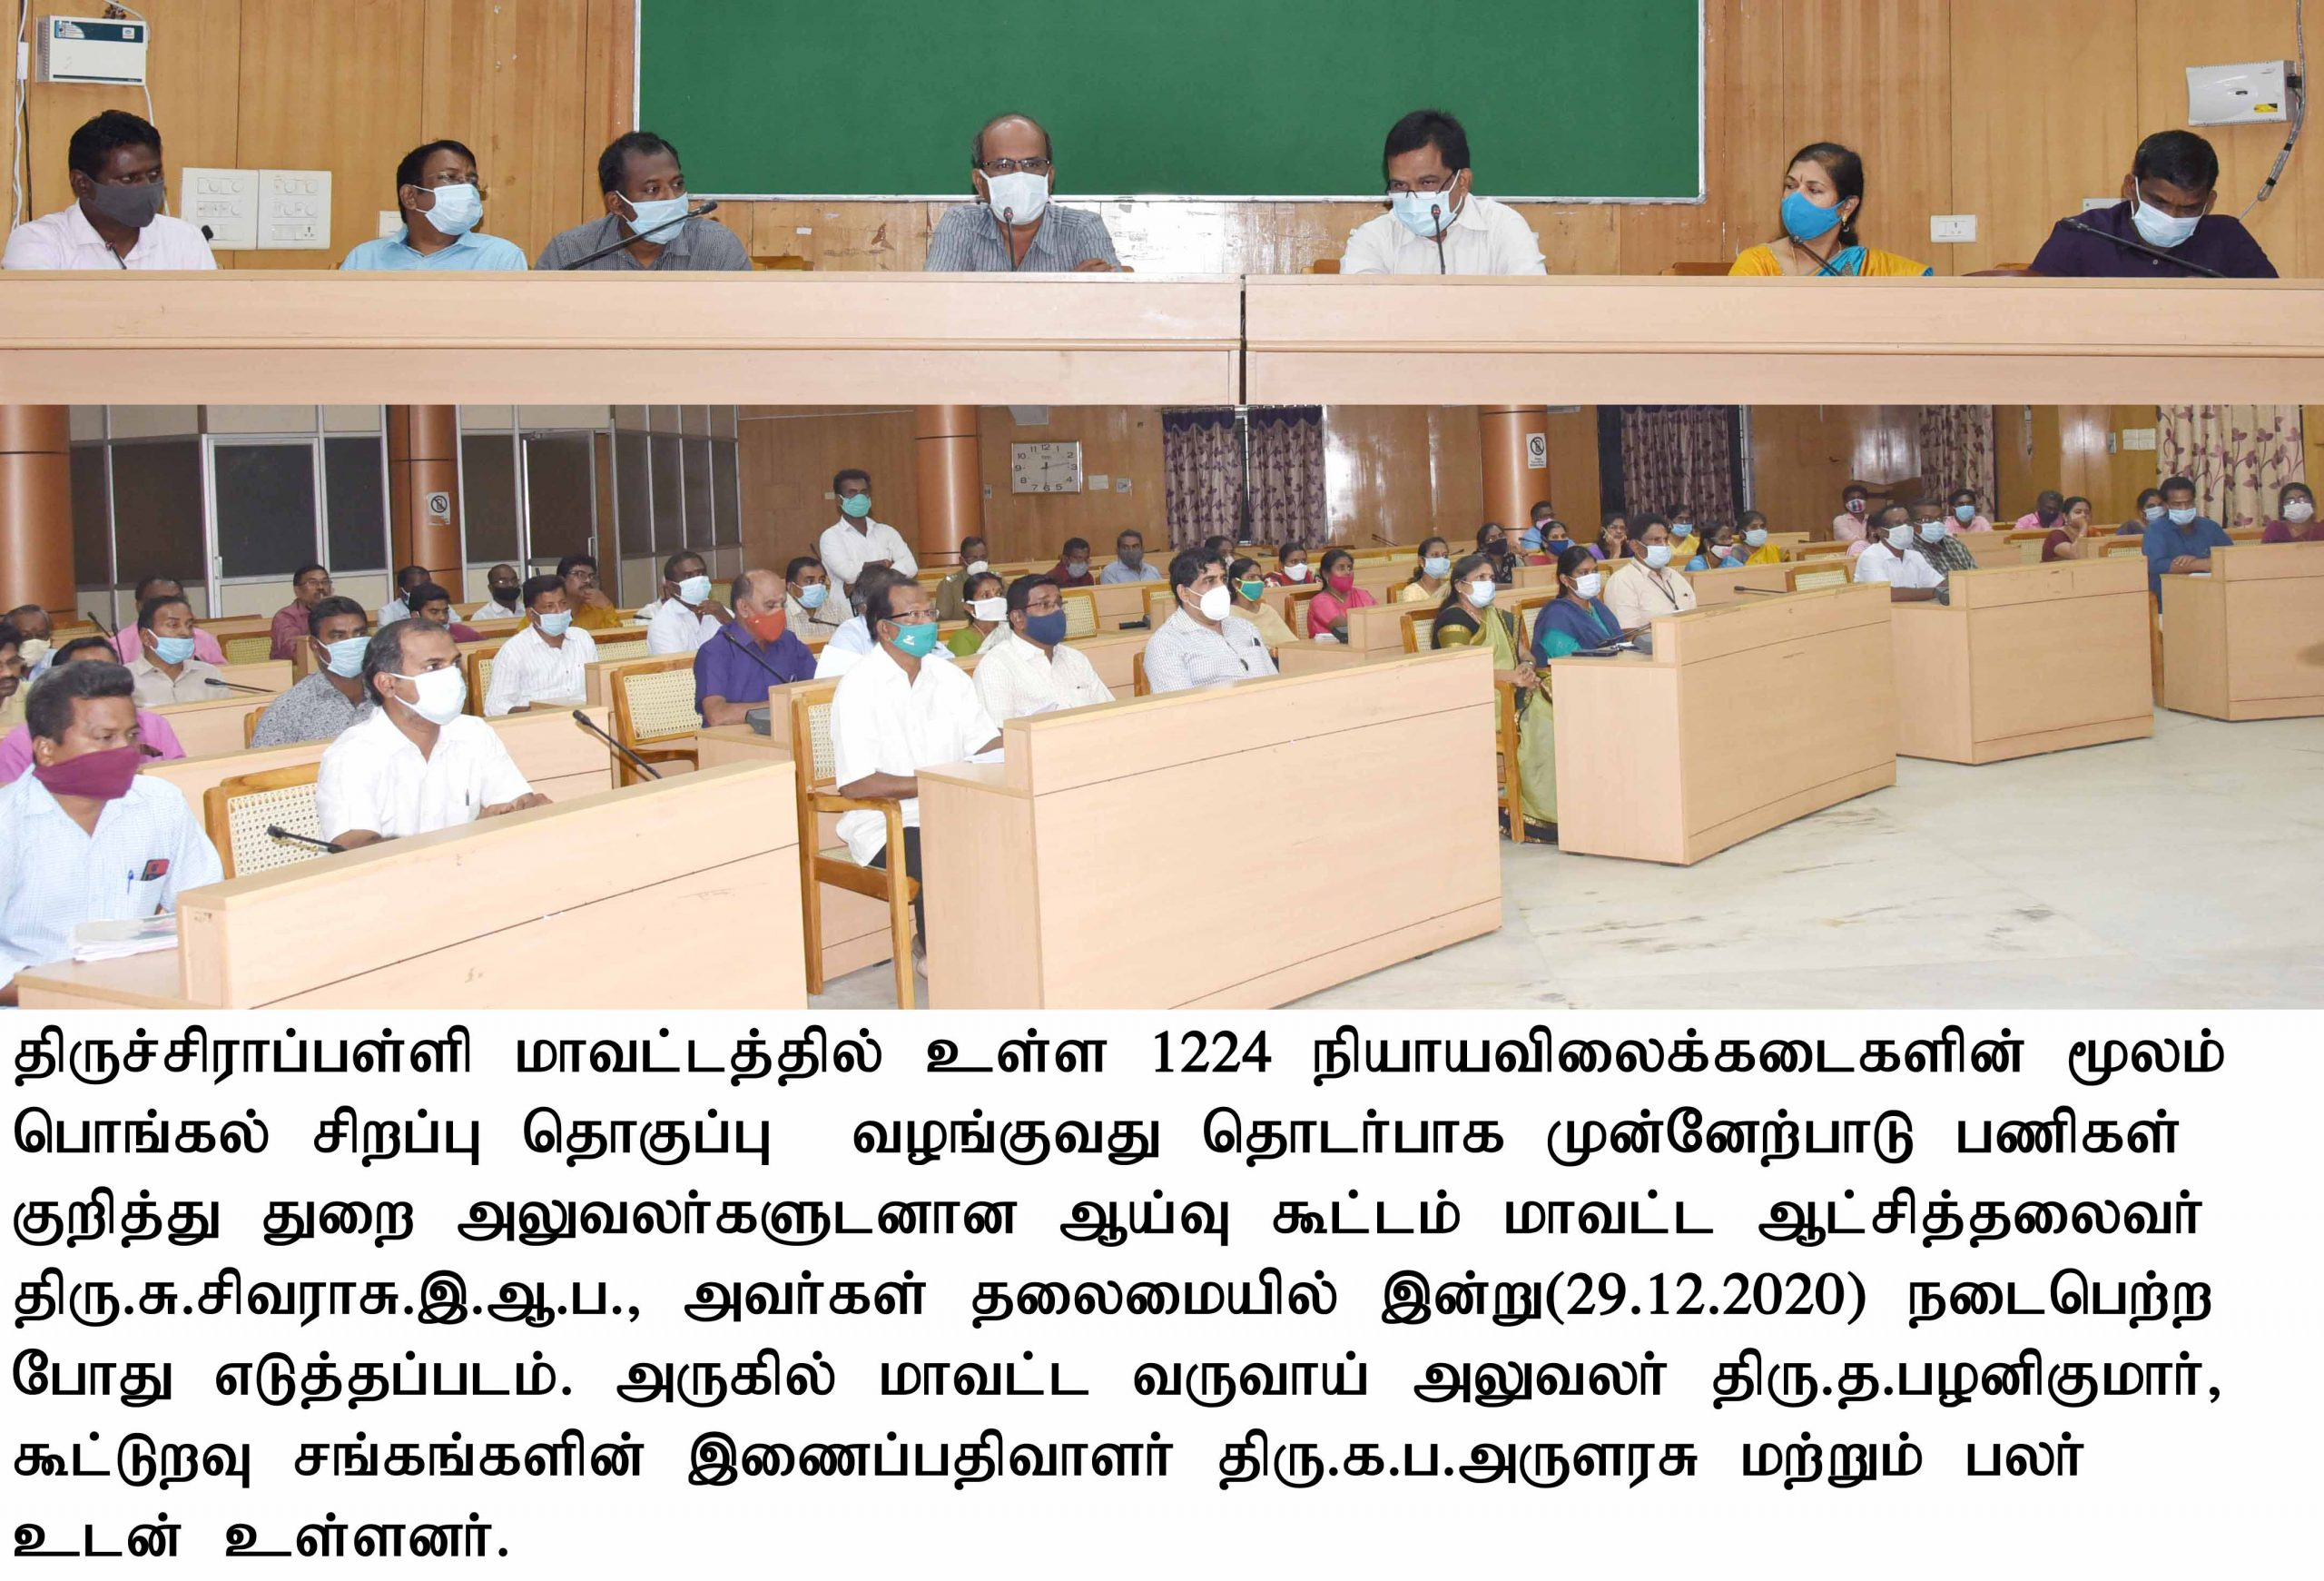 District Collector conducted the Preparatory meeting with District Official regarding Pongal Gift Distribution on 29.12.2020